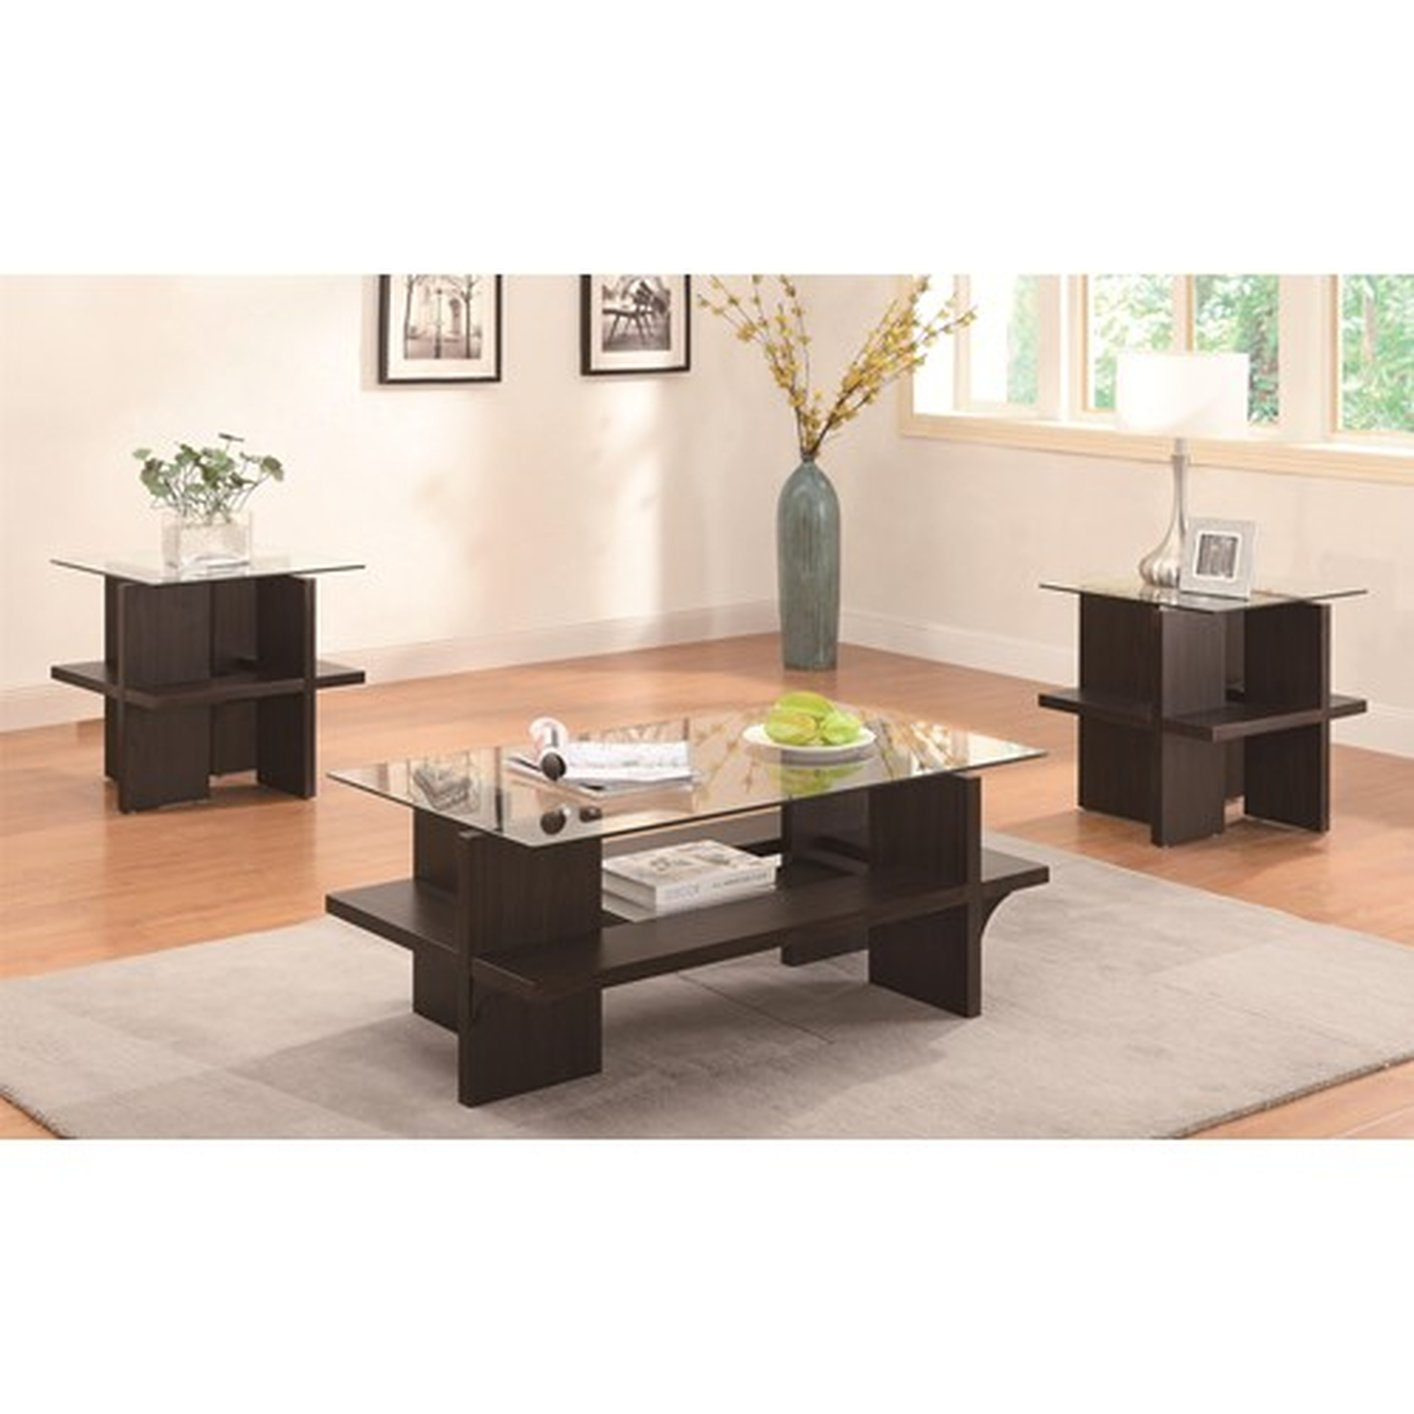 Enright Brown Glass Coffee Table Set Steal A Sofa Furniture